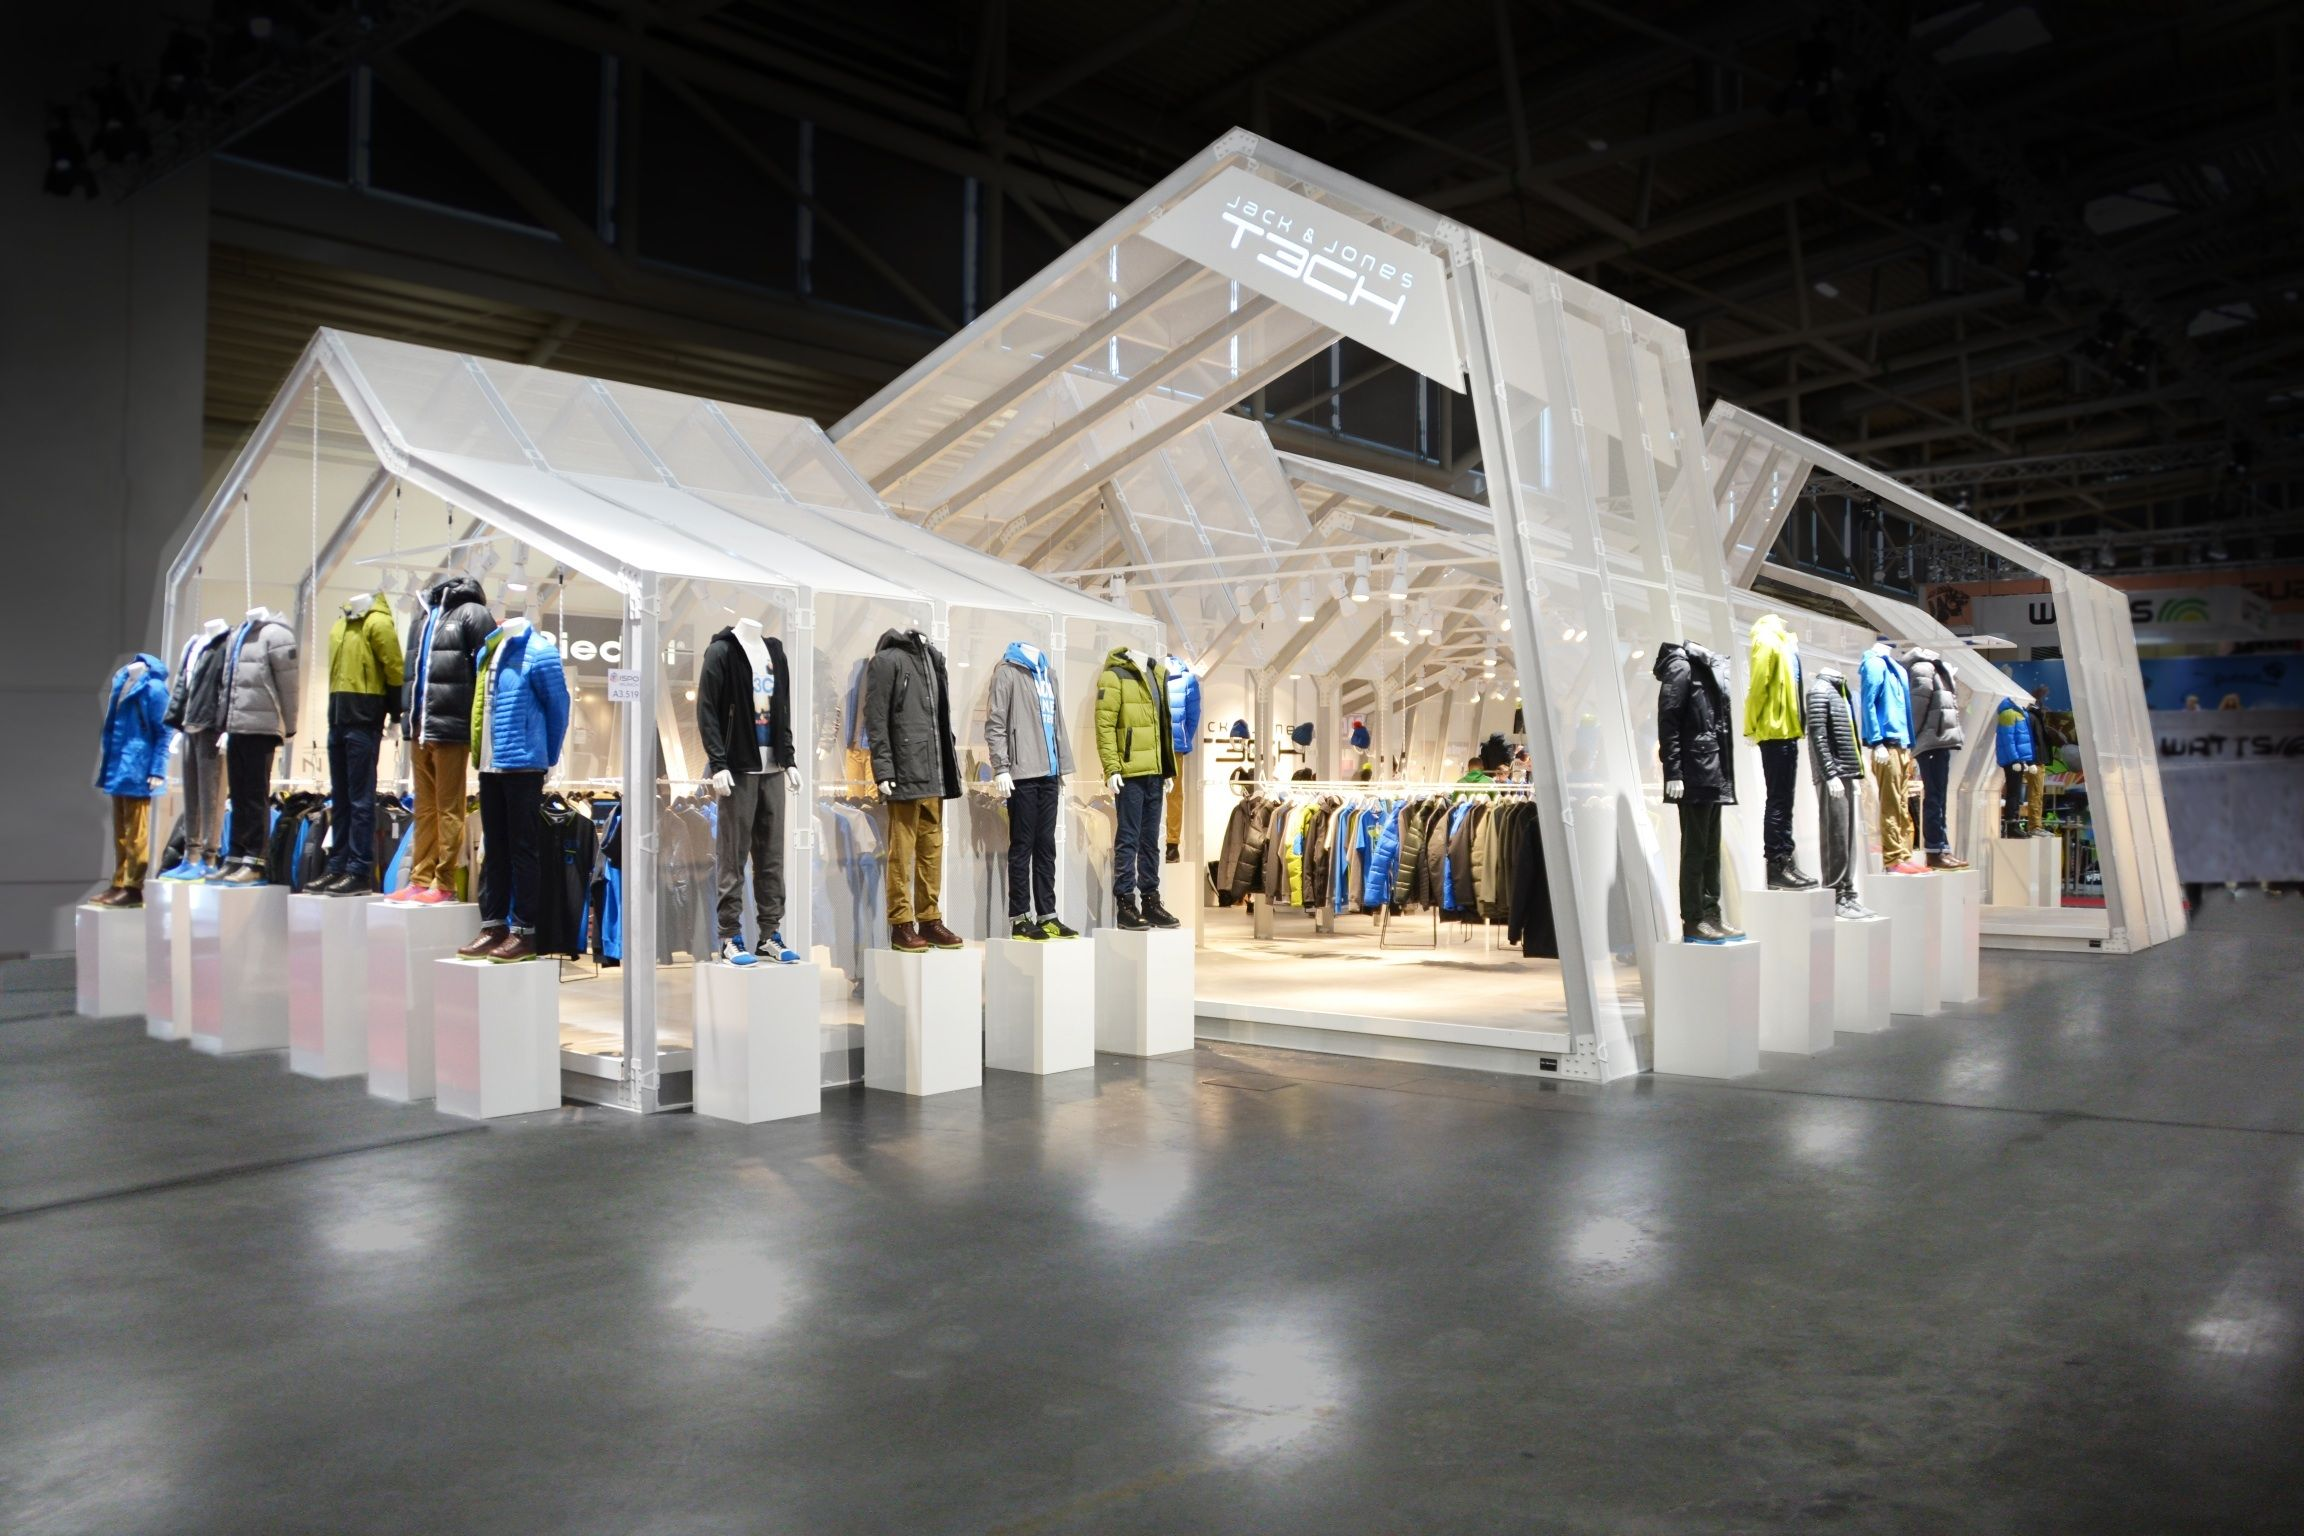 Great example of turning your booth into a retail store ...